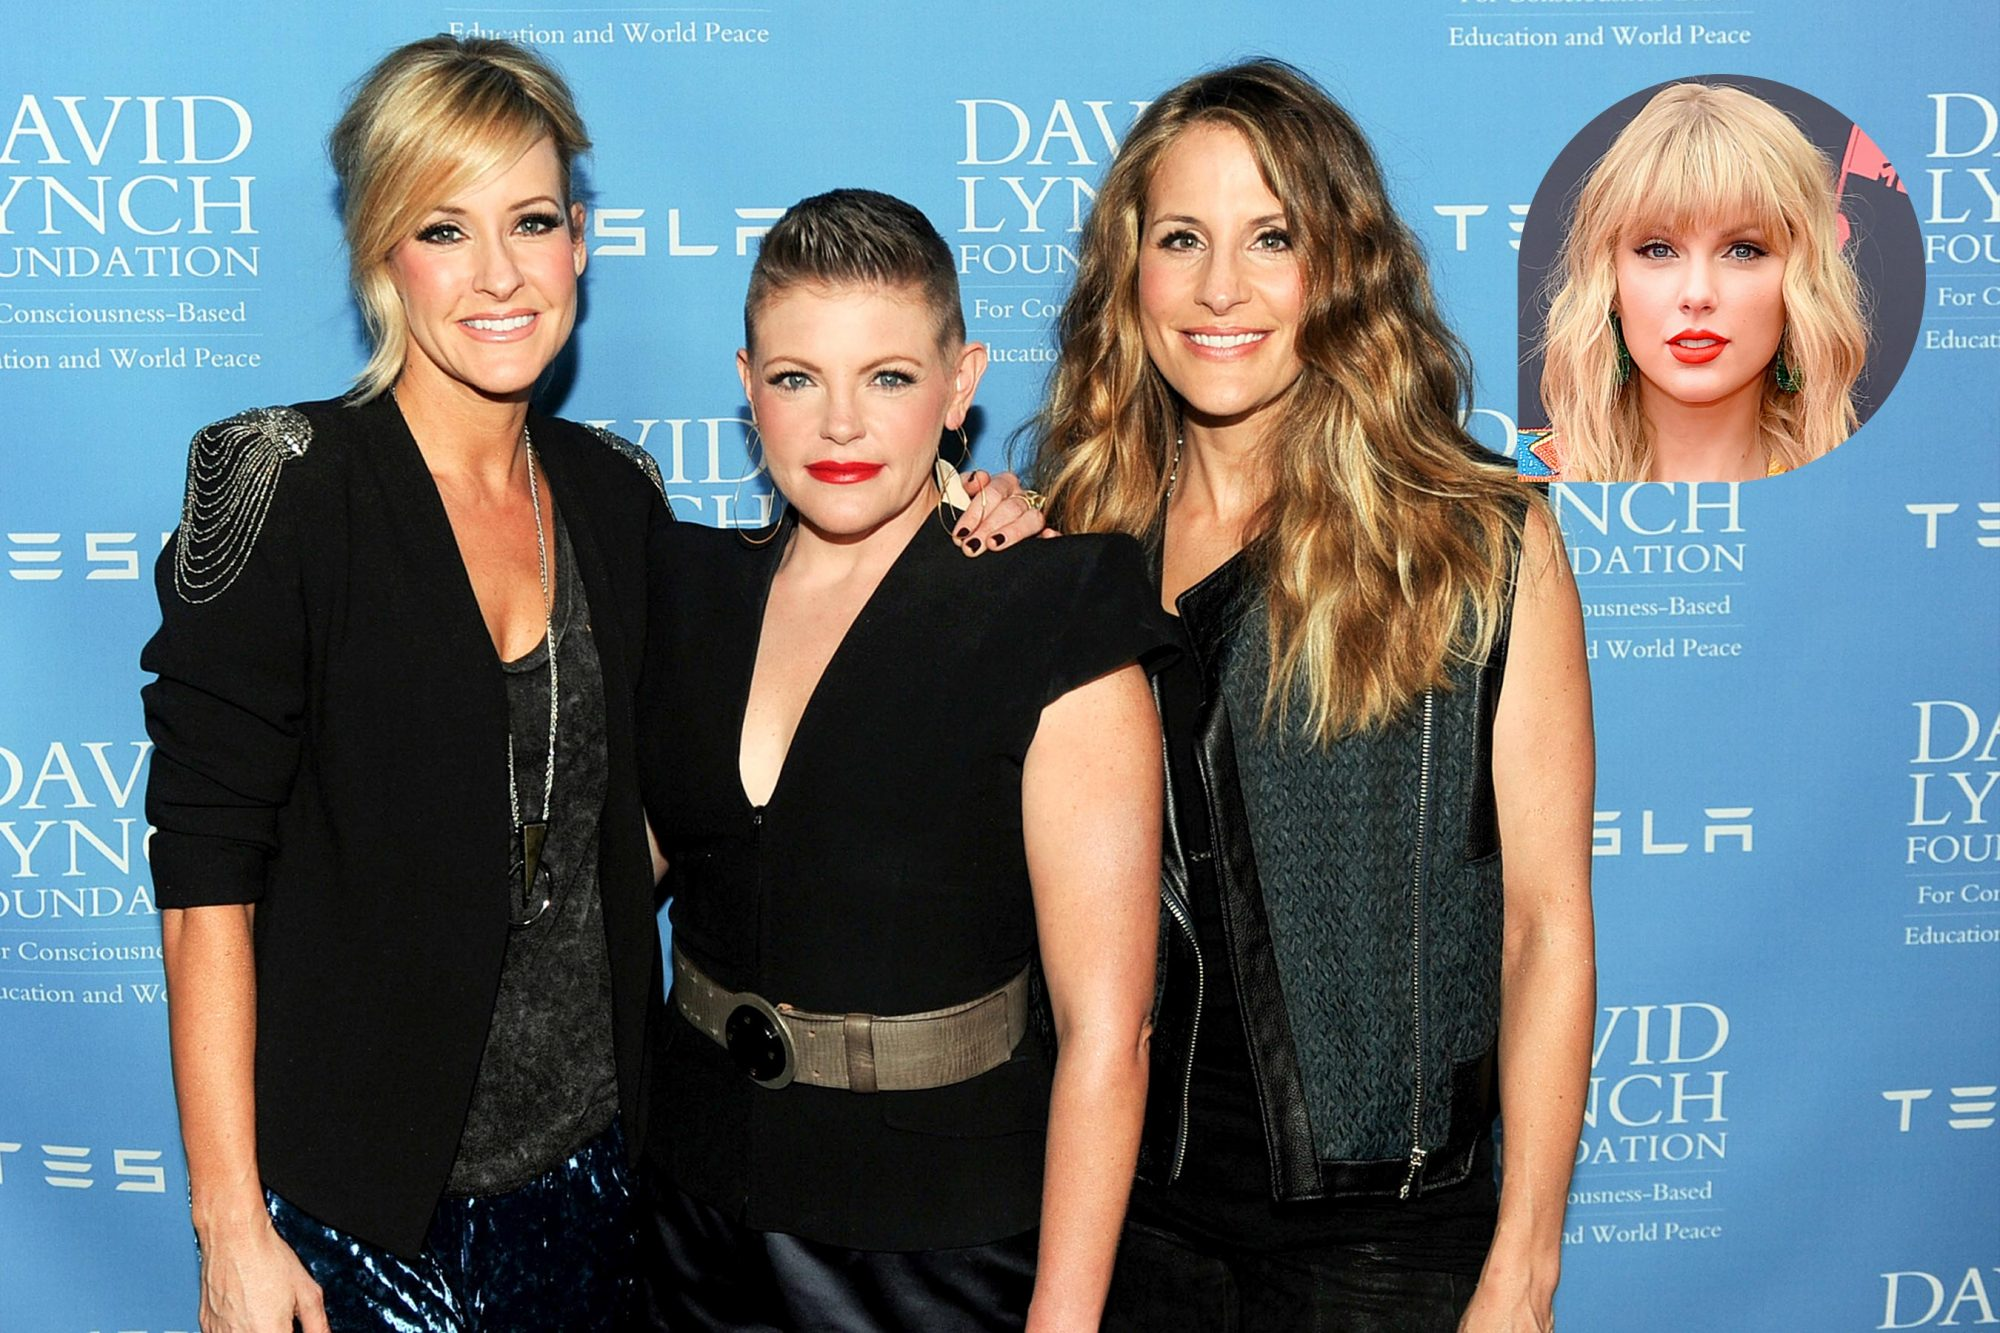 BEVERLY HILLS, CA - FEBRUARY 27: (L-R) Musicians Martie Maguire, Natalie Maines and Emily Robison of the Dixie Chicks arrive at the David Lynch Foundation Gala Honoring Rick Rubin at the Beverly Wilshire Hotel on February 27, 2014 in Beverly Hills, California. (Photo by Kevin Winter/Getty Images) NEWARK, NEW JERSEY - AUGUST 26: Taylor Swift attends the 2019 MTV Video Music Awards at Prudential Center on August 26, 2019 in Newark, New Jersey. (Photo by Jamie McCarthy/Getty Images for MTV)